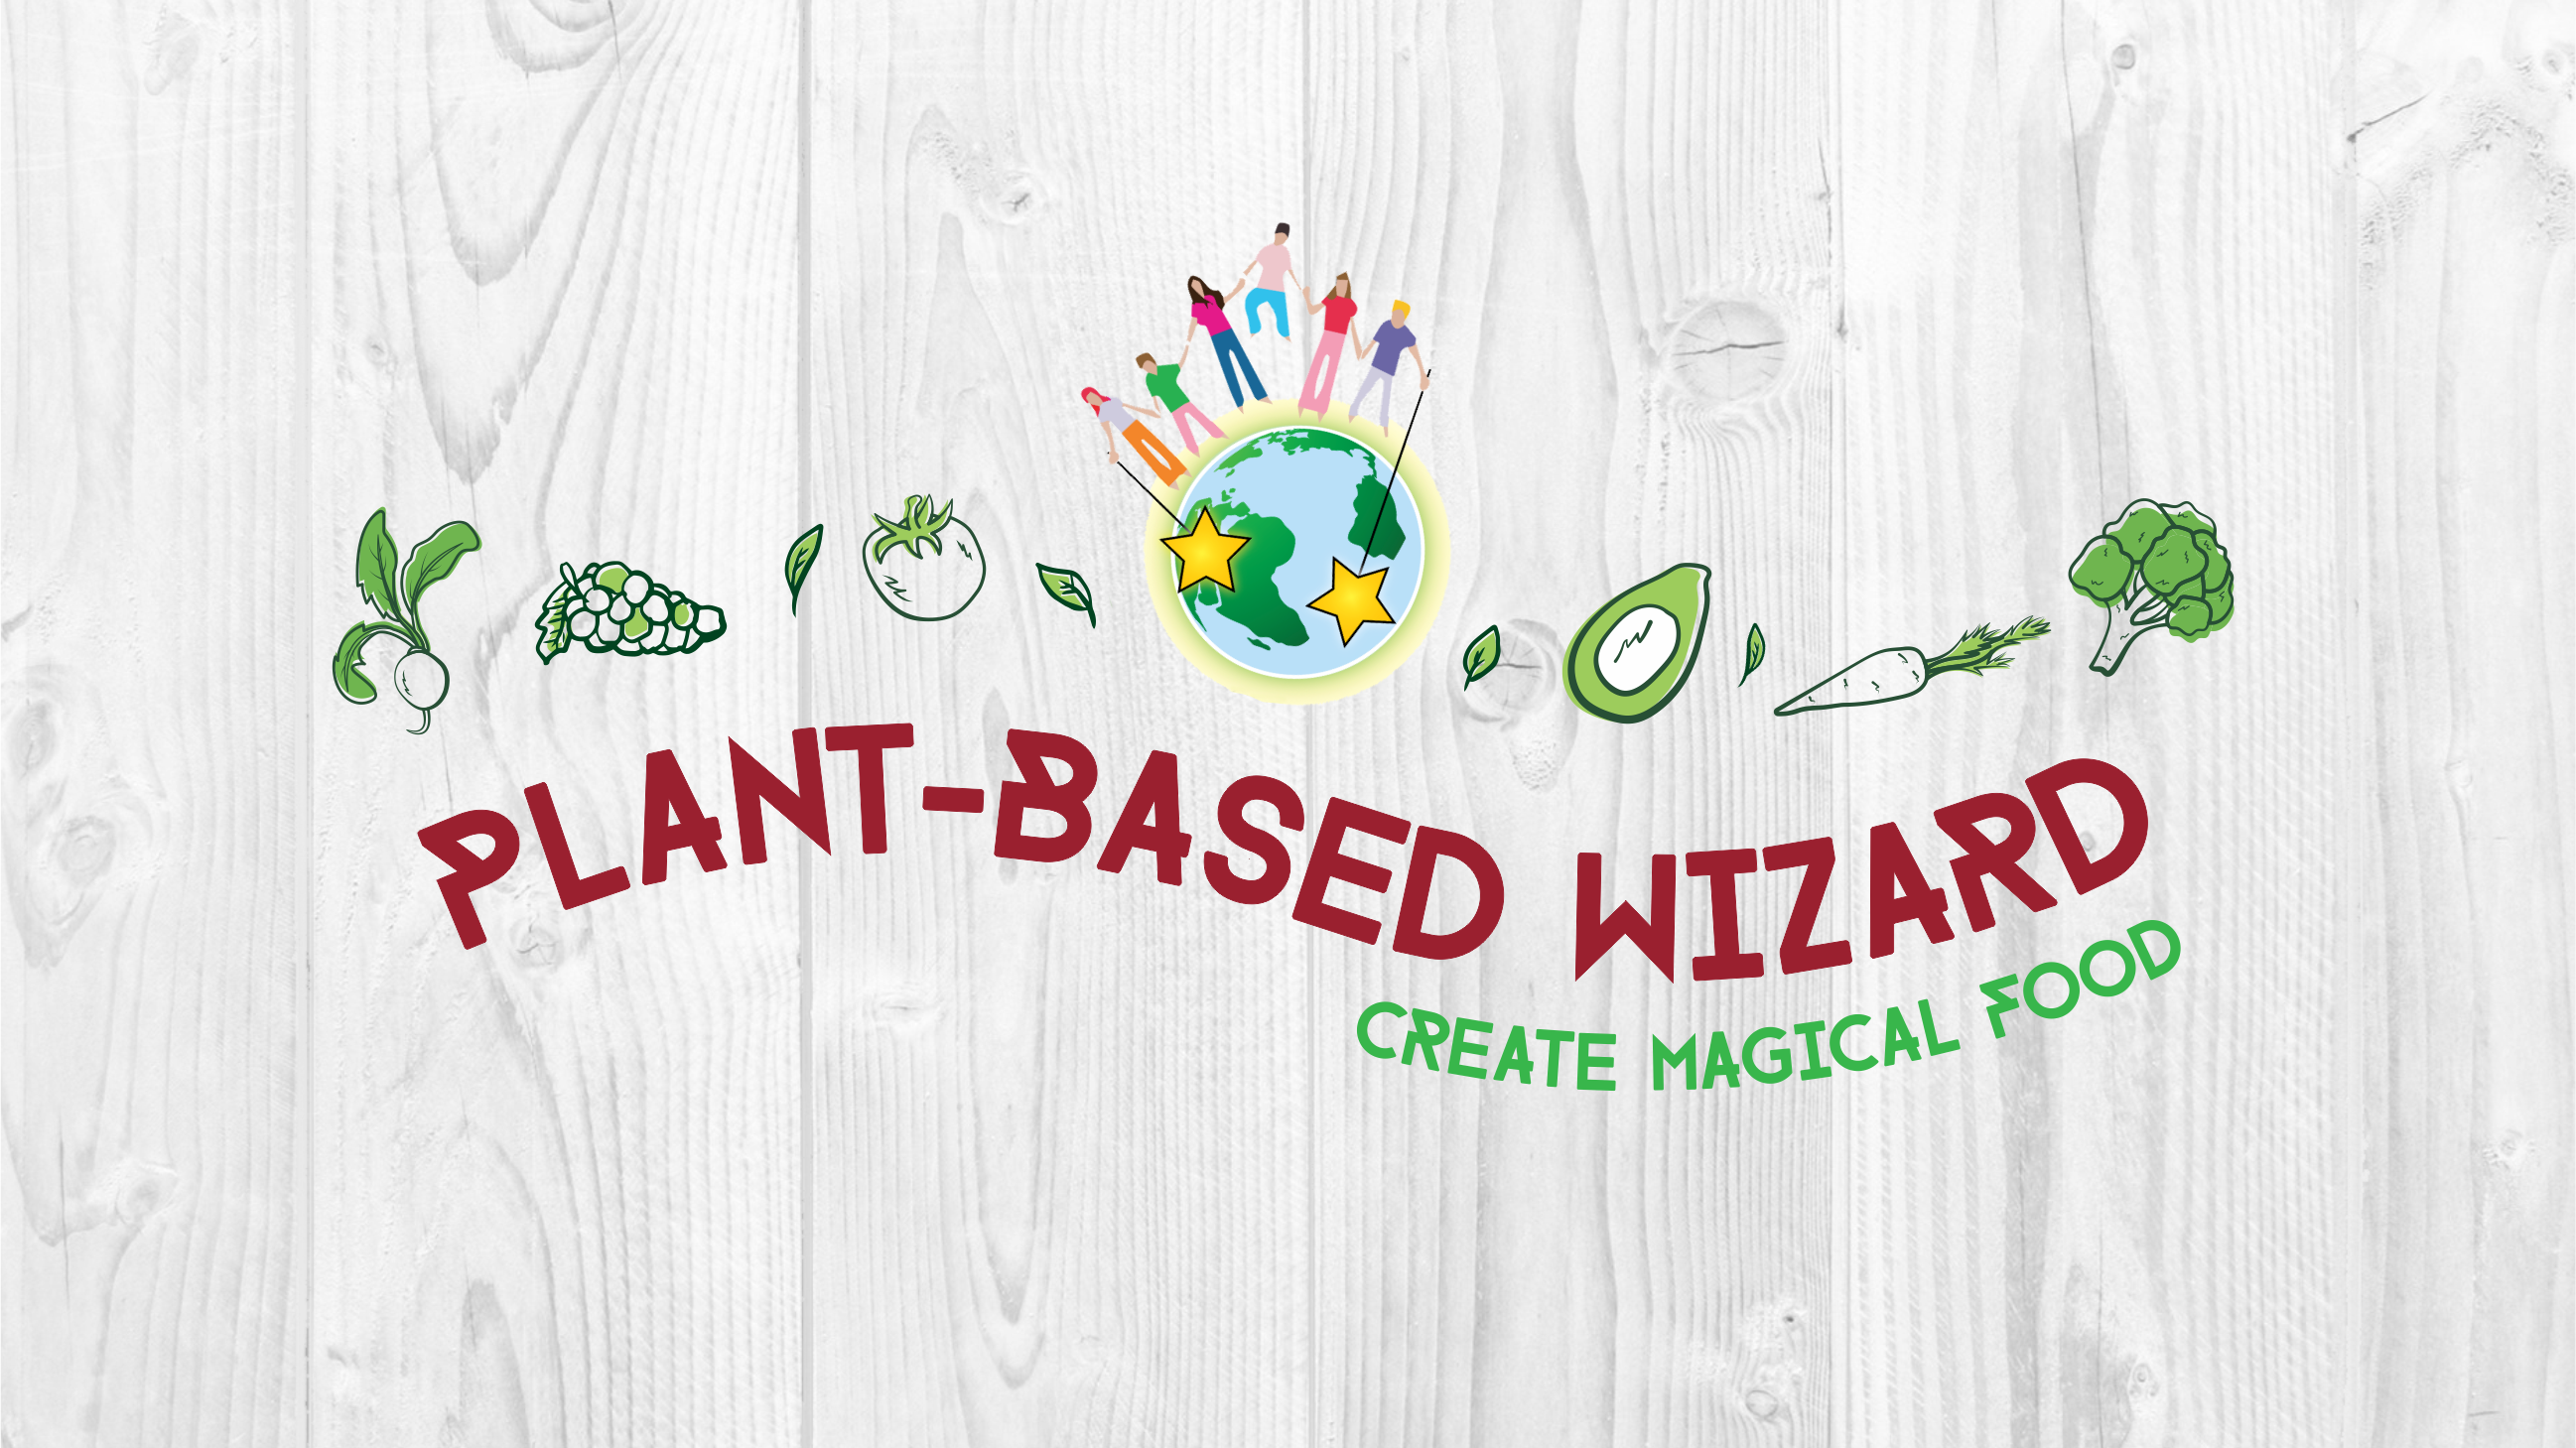 Plant Based Wizard